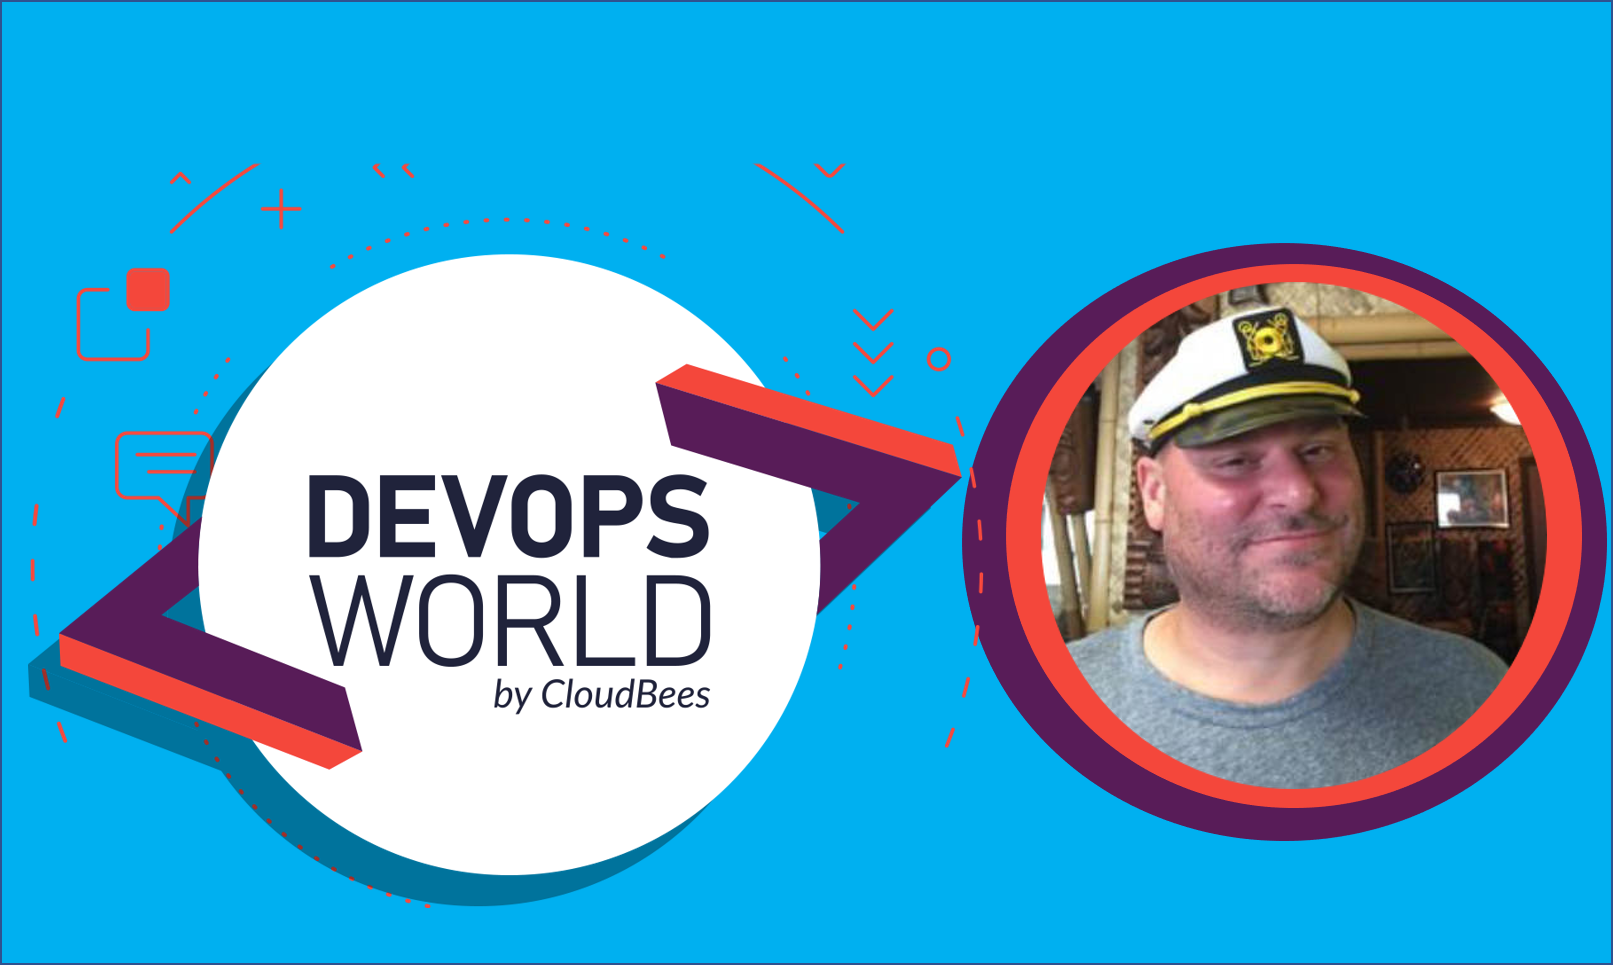 Markys Experience at DevOps world